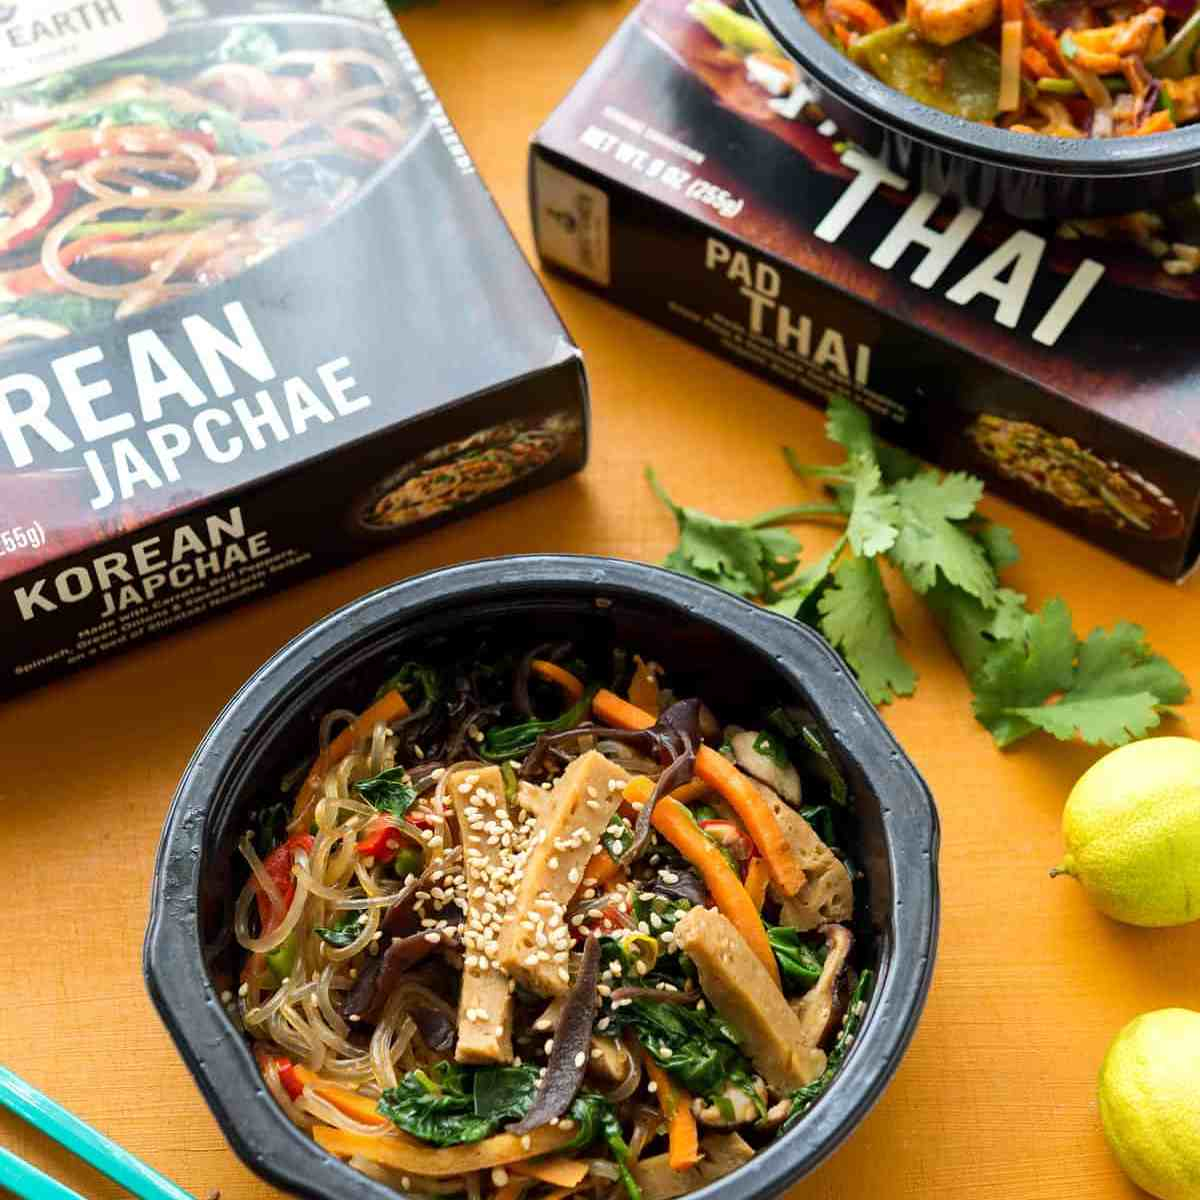 Review: Sweet Earth Foods Korean Japchae & Pad Thai, vegan, frozen entrees! Perfect for an utterly delicious, convenient meal. #vegan #sweetearthfoods